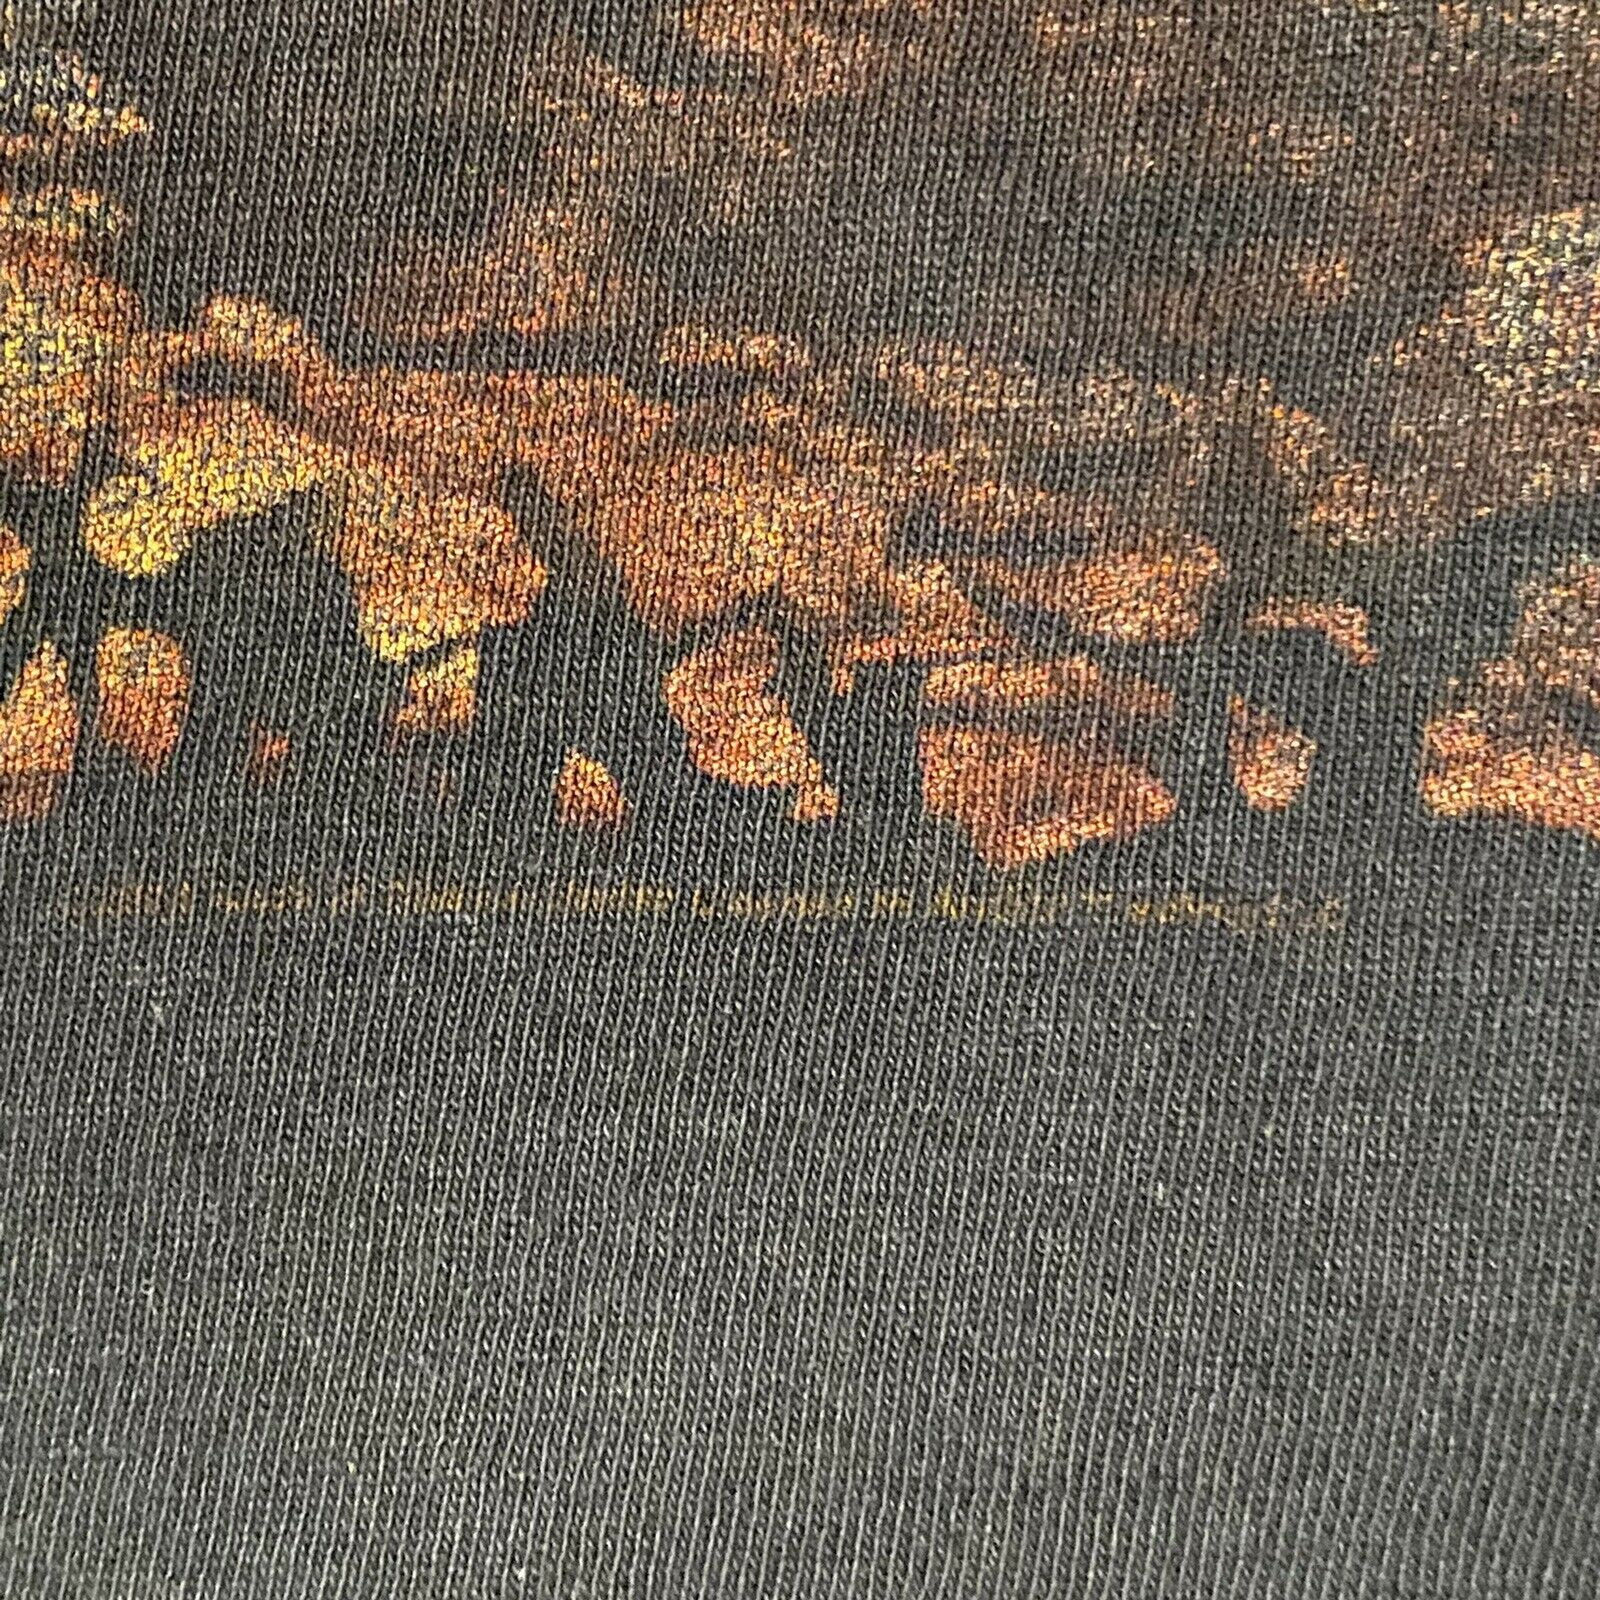 vintage alice in chains shirt - image 5